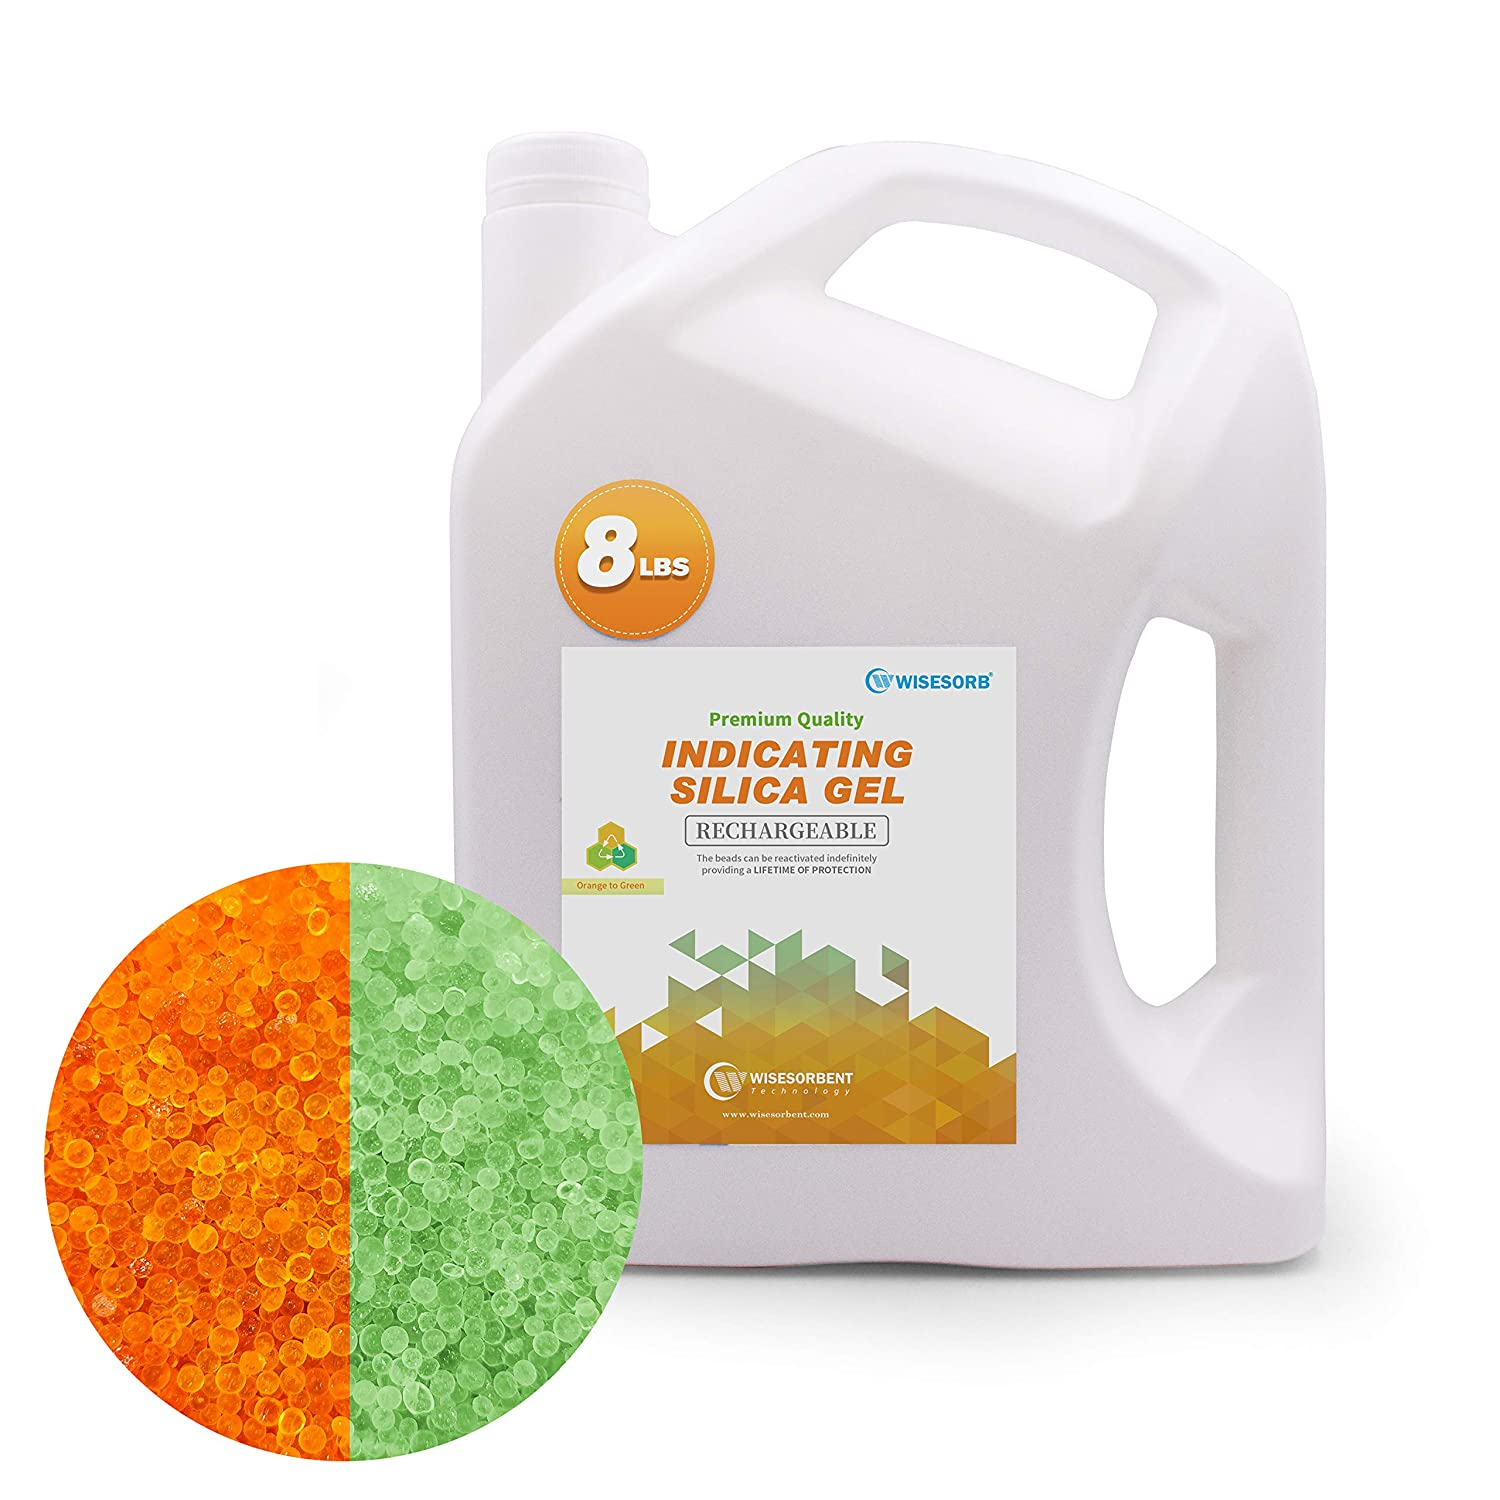 Wisesorb 8LBS Premium Quality Reusable Indicating Silica Gel Desiccant Beads-Rechargeable (Orange to Green, Silica Gel)